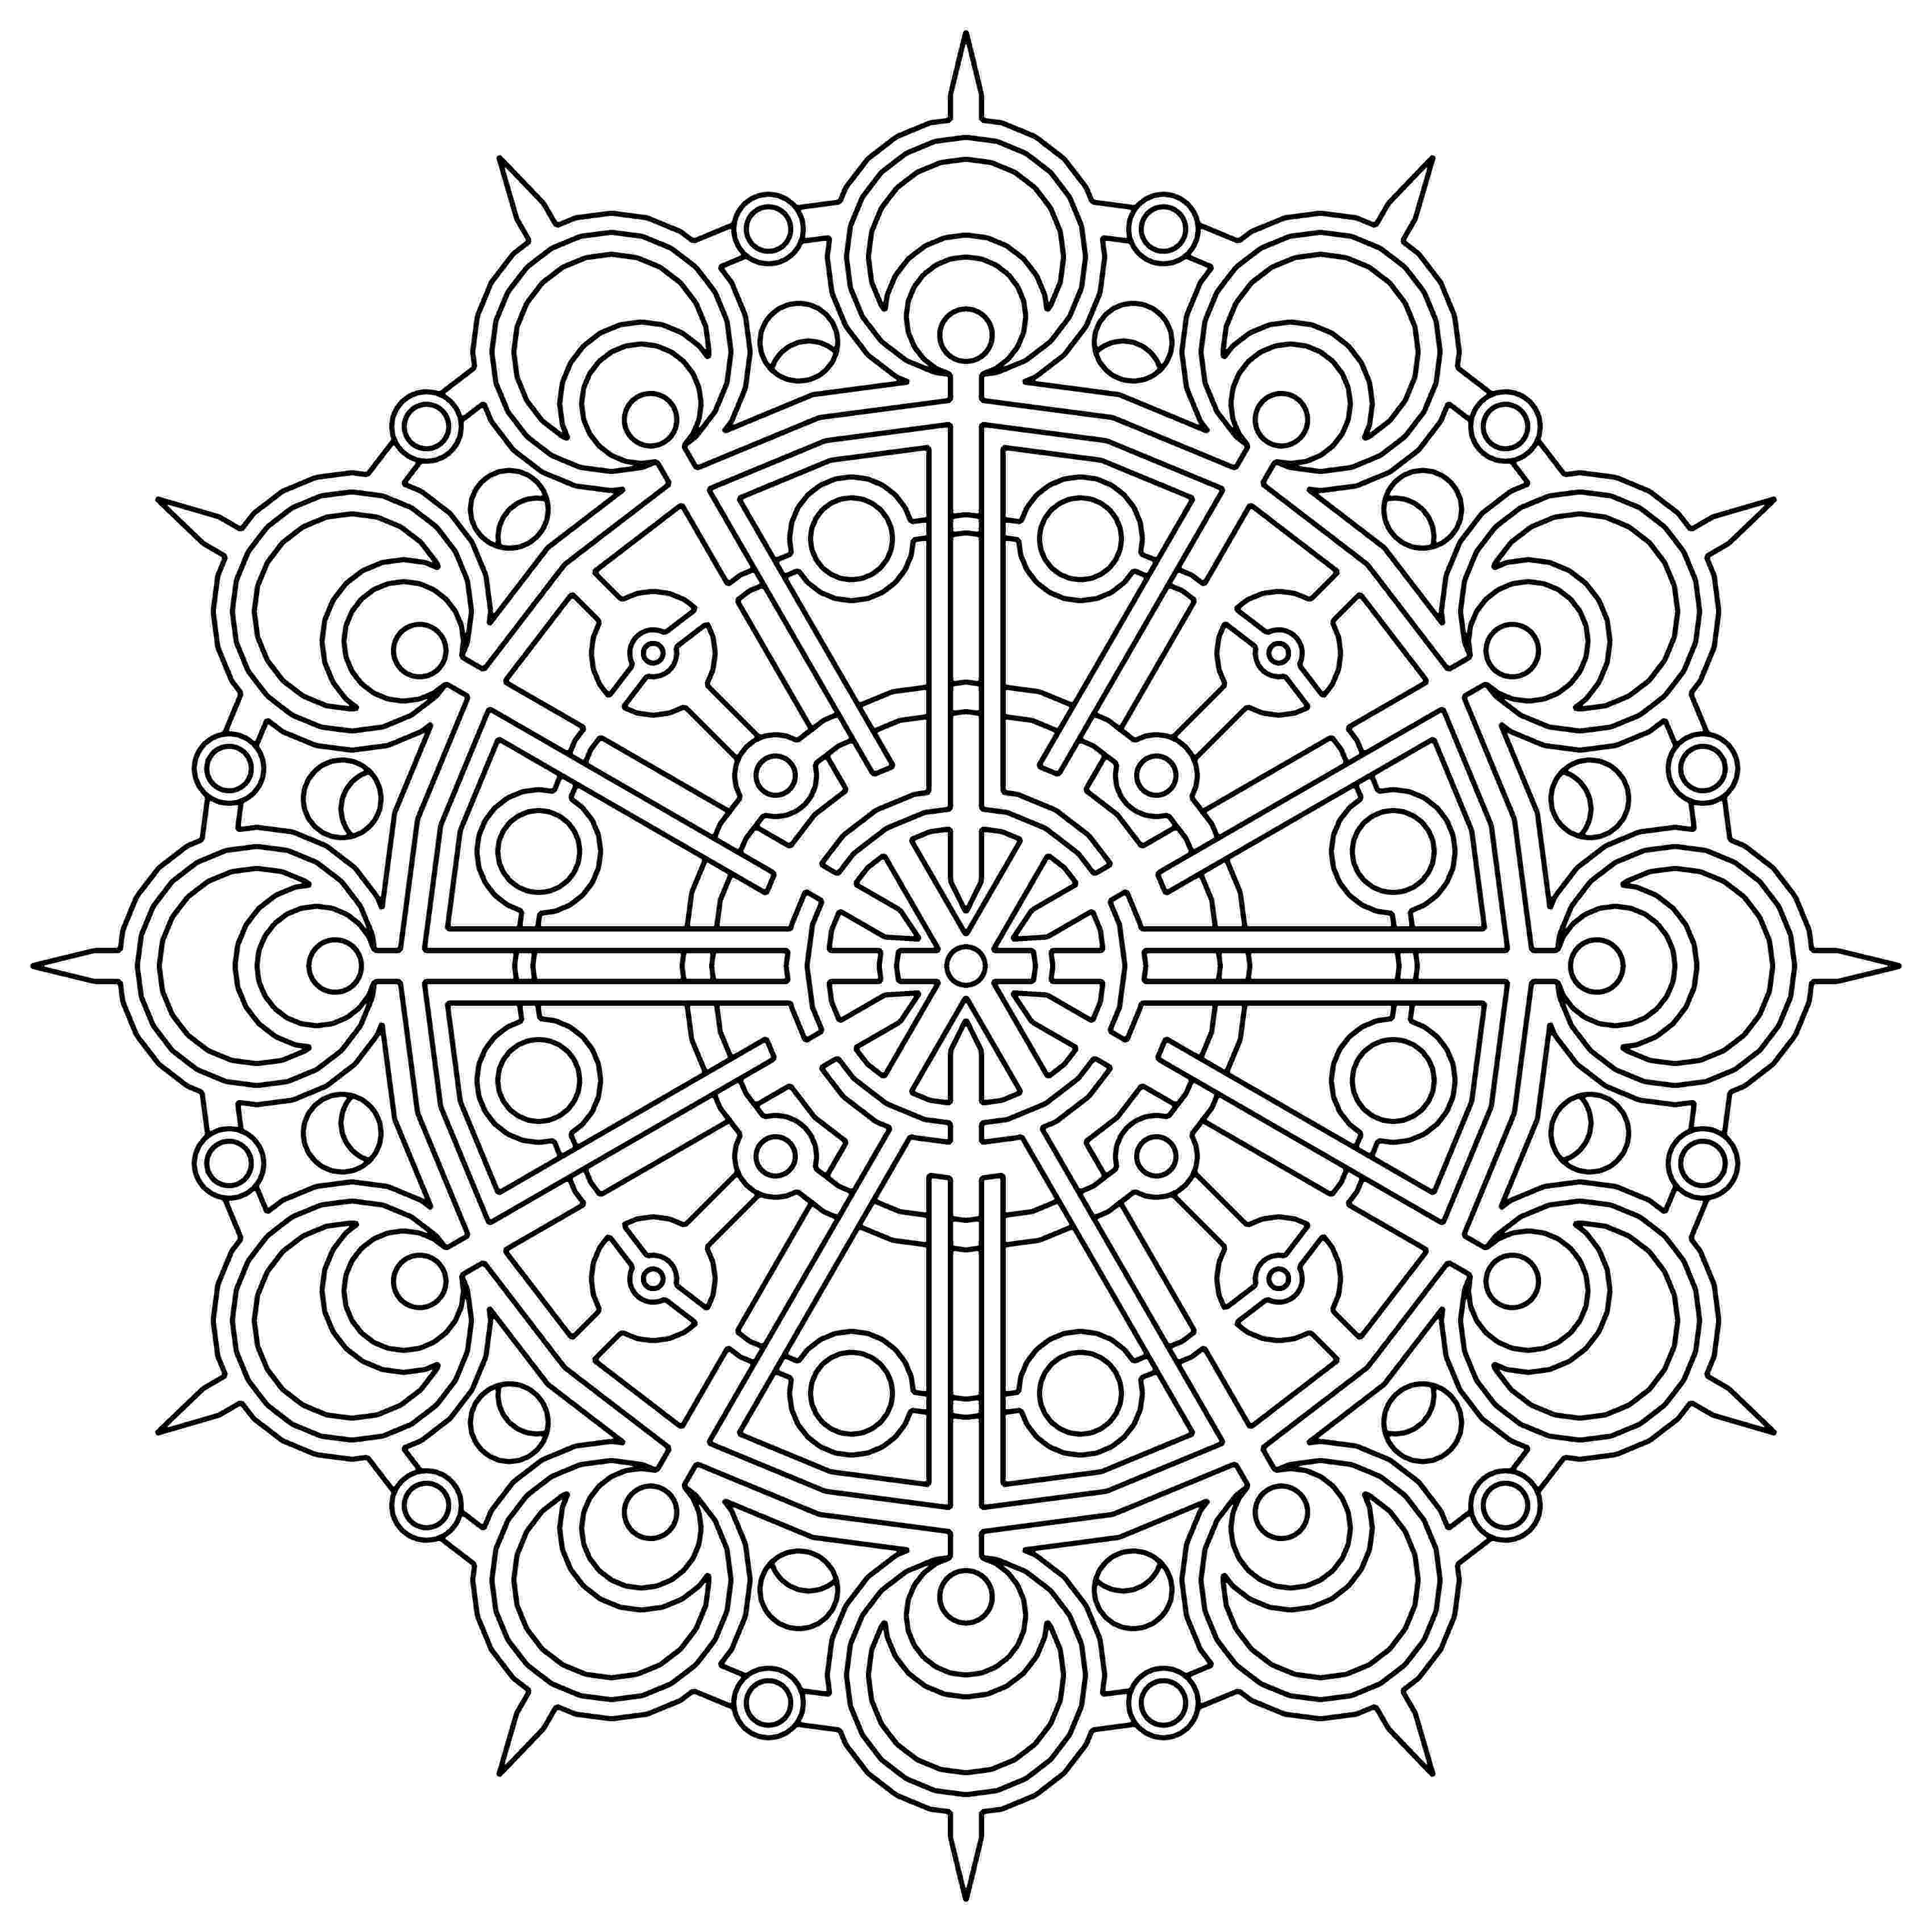 colouring pattern quilt coloring pages to download and print for free colouring pattern